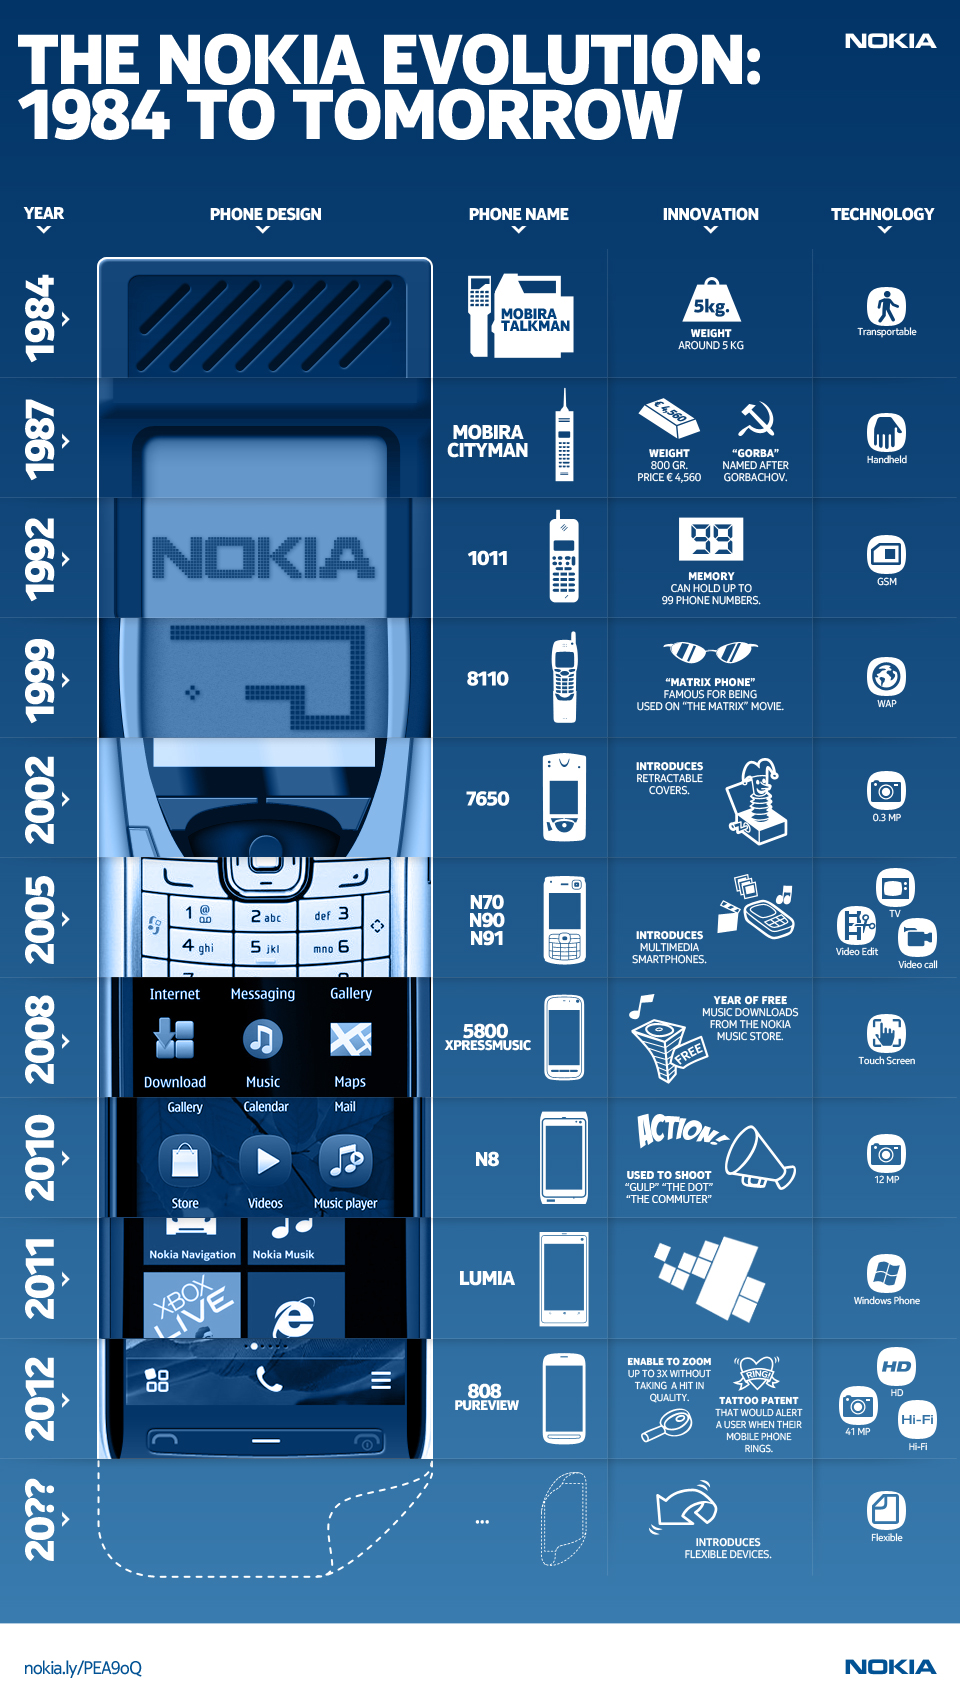 Nokia_HardwareInnovation